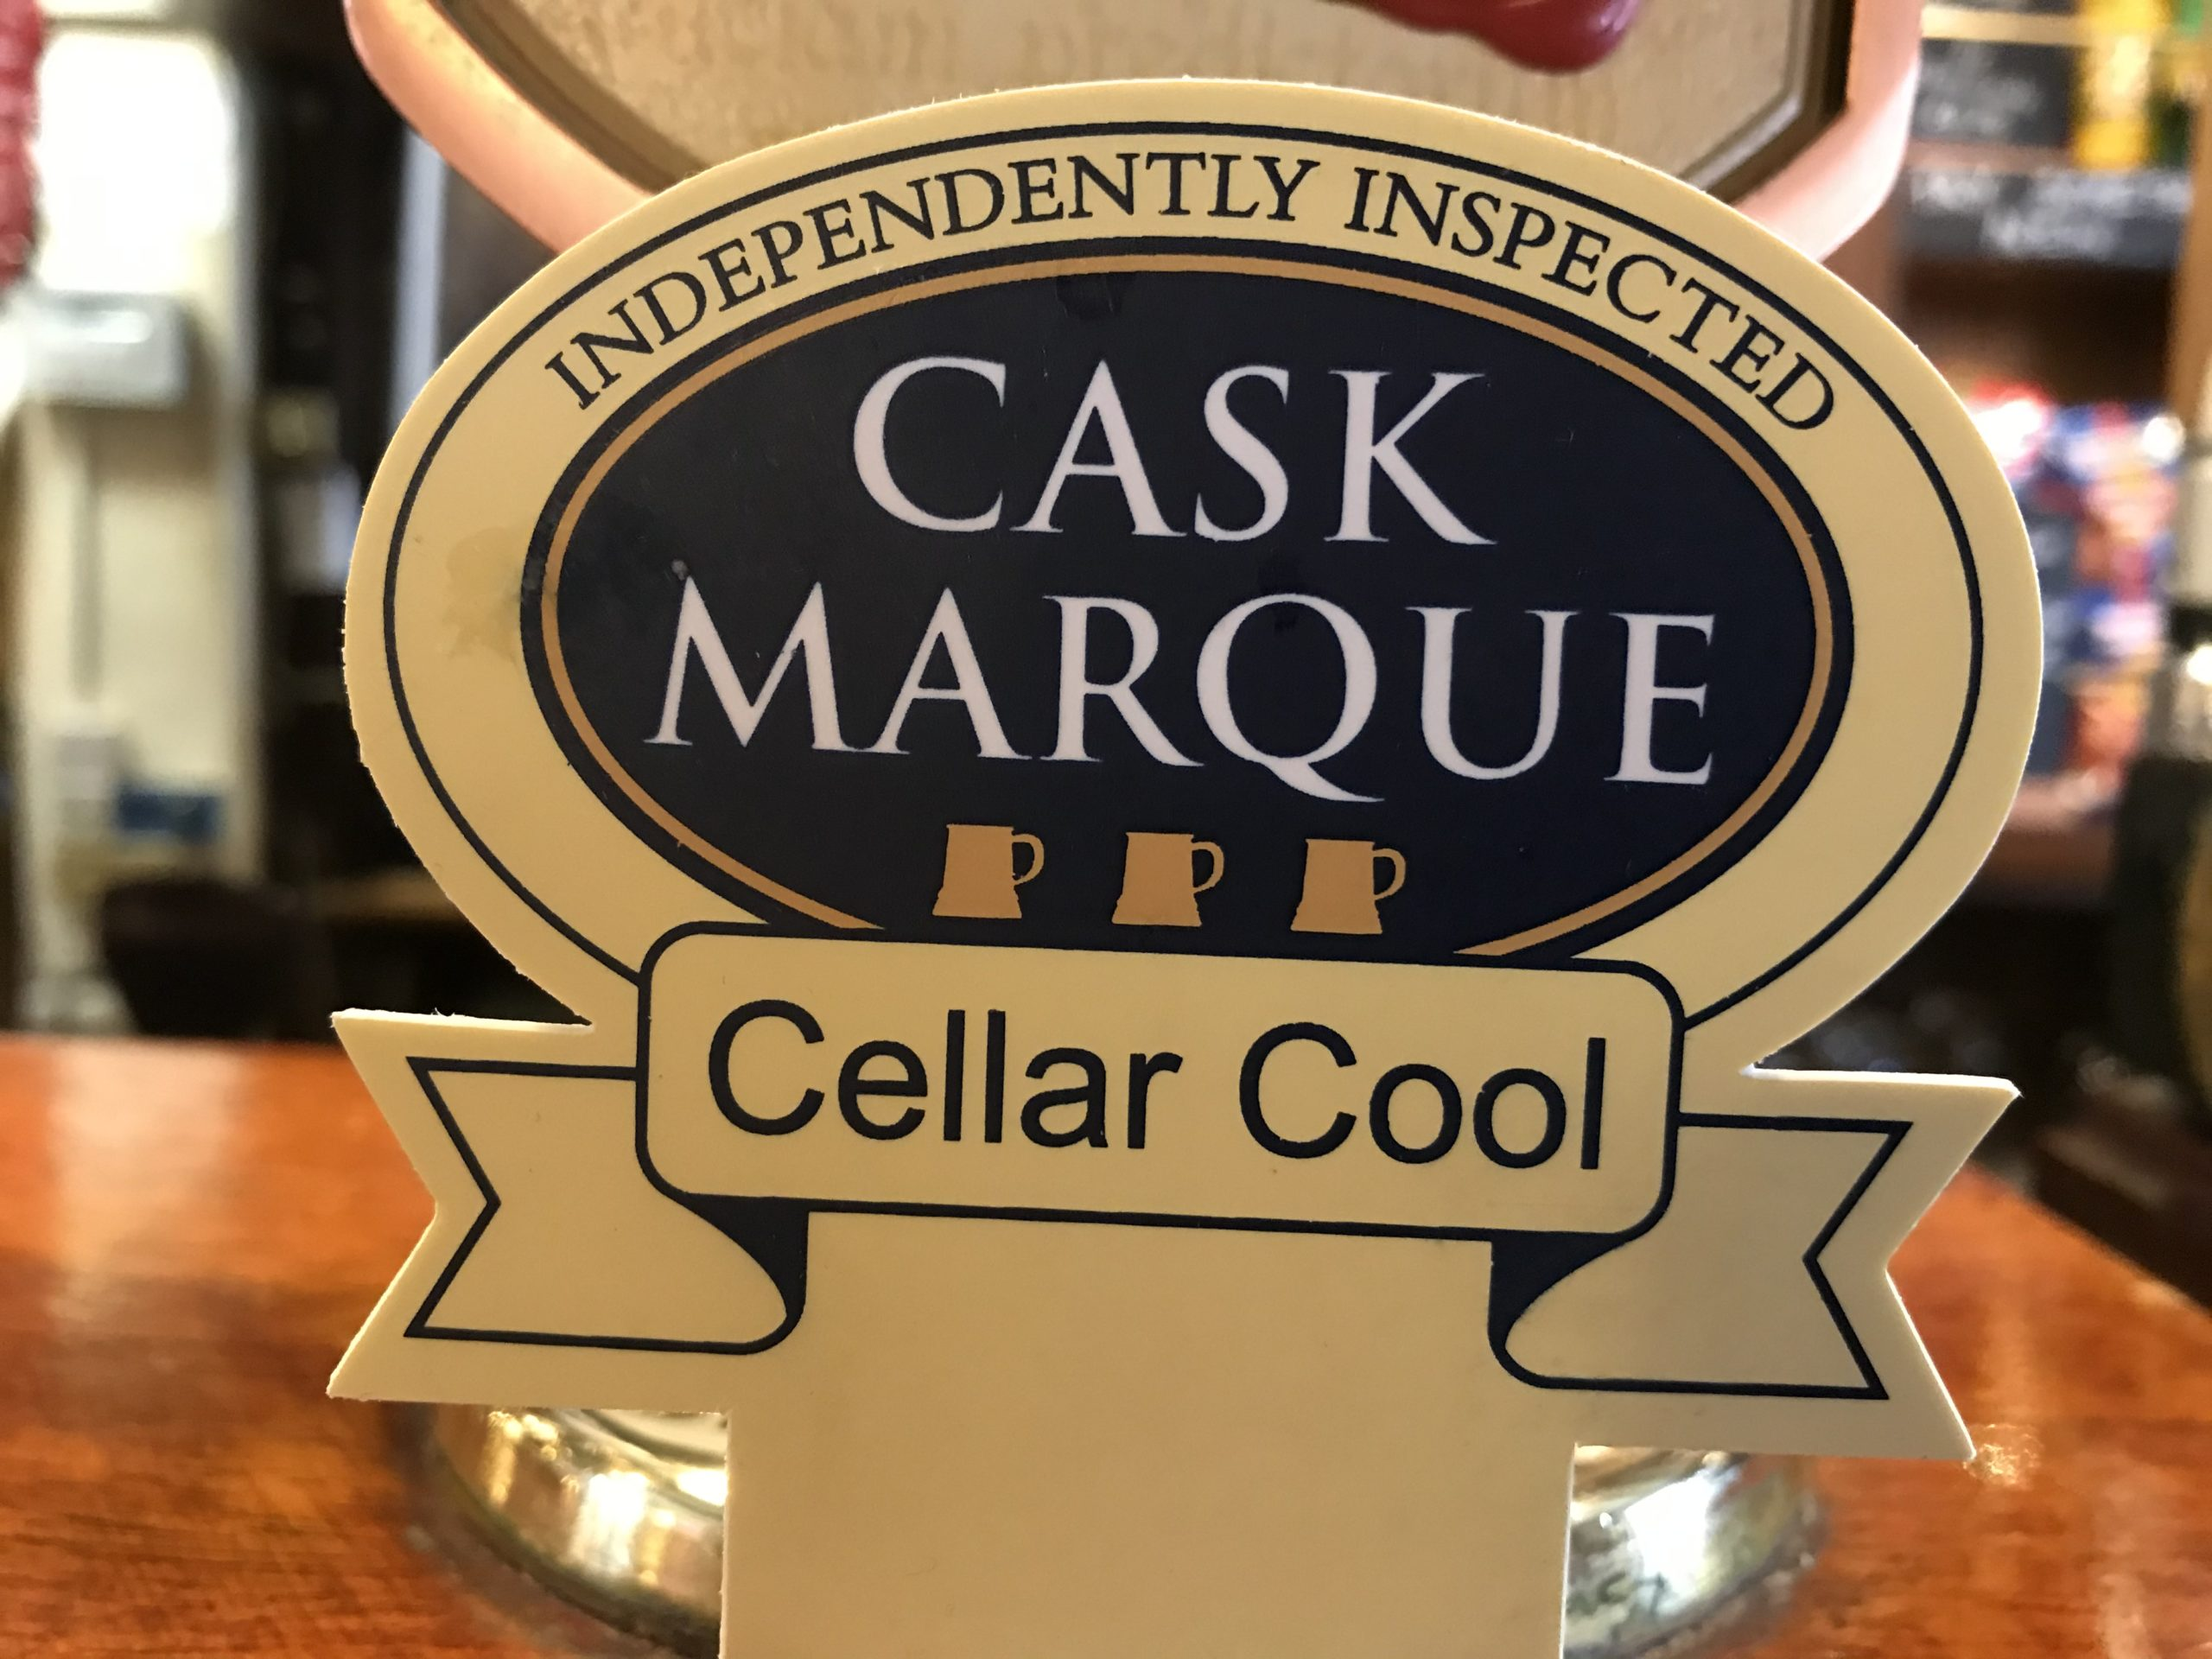 Approved Cask Marque Cellar cool at the Pykkerell inn